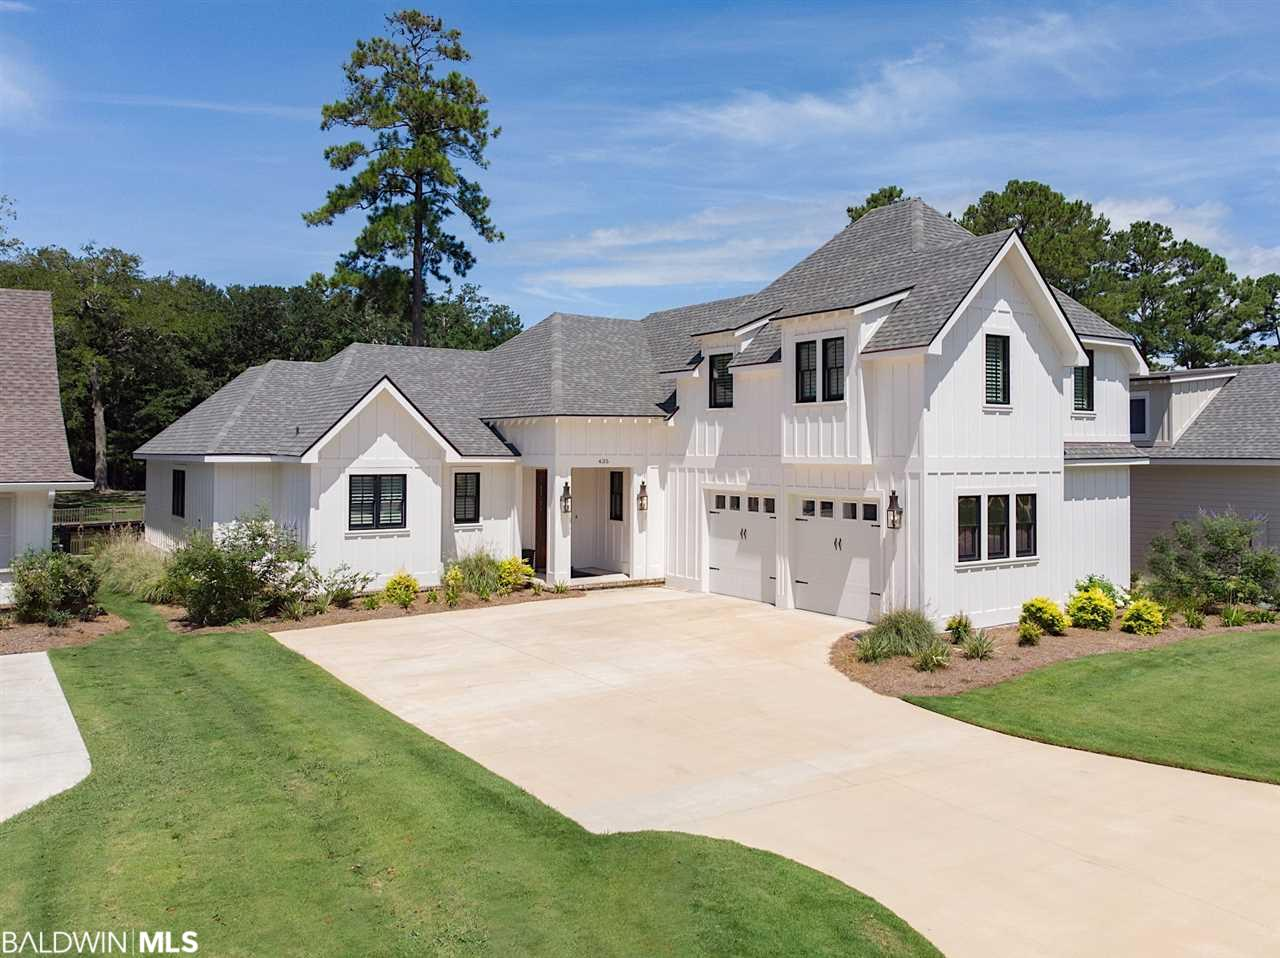 435 Colony Drive, Fairhope, AL 36532